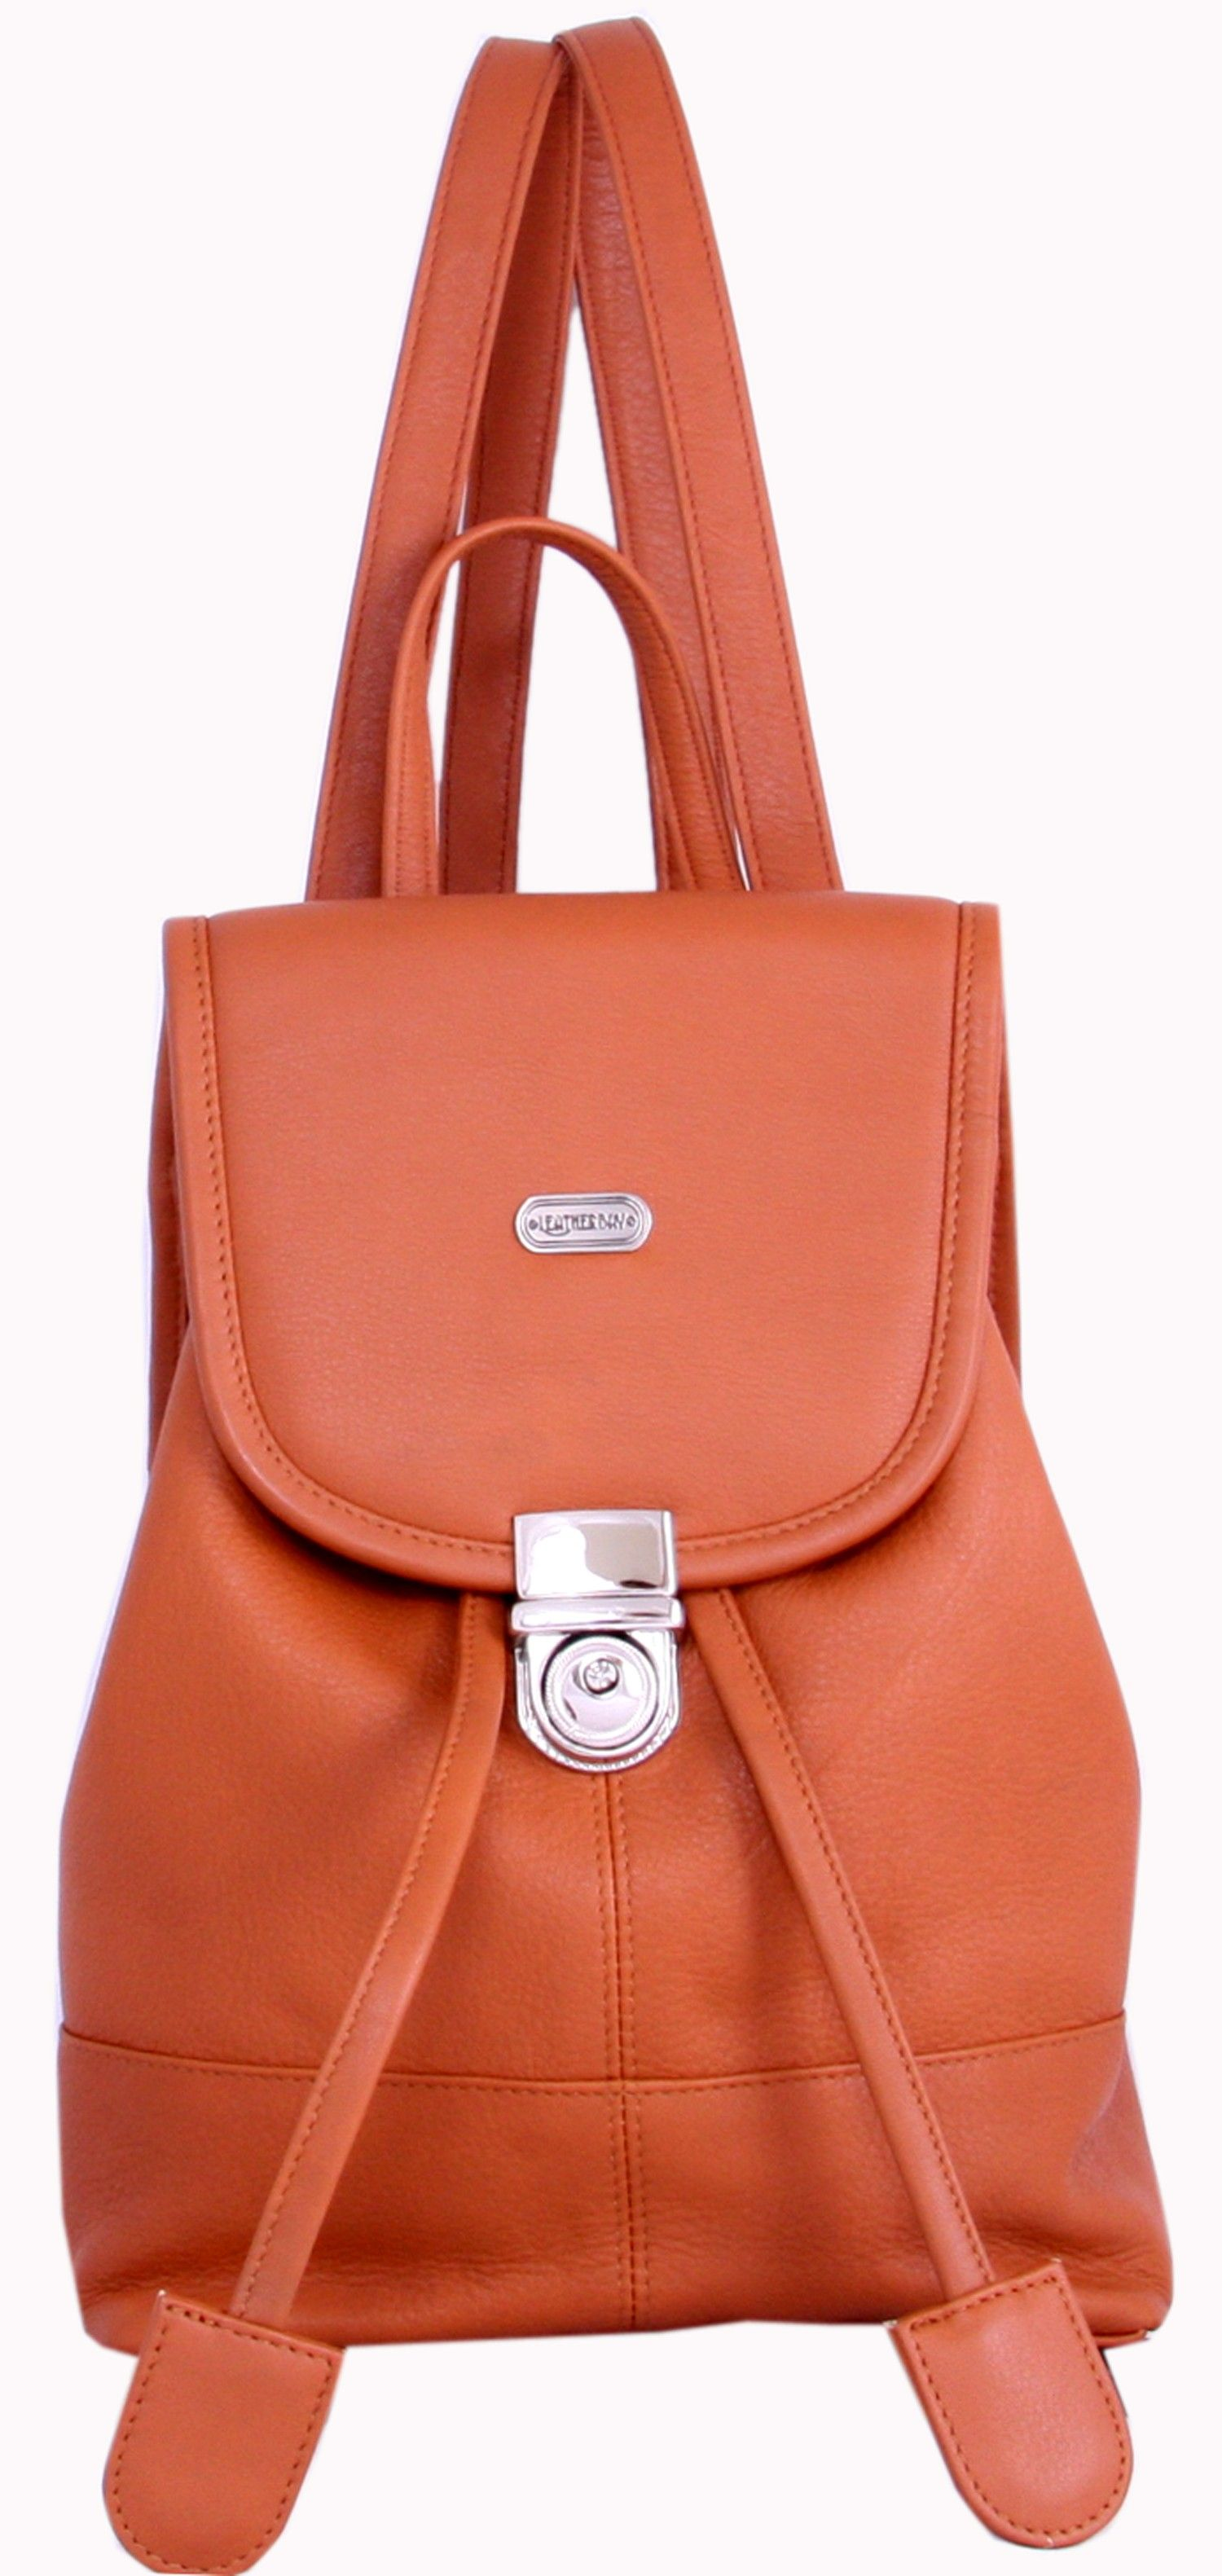 Small Backpack Purse - Backpakc Fam | leather_backpack | Pinterest ...